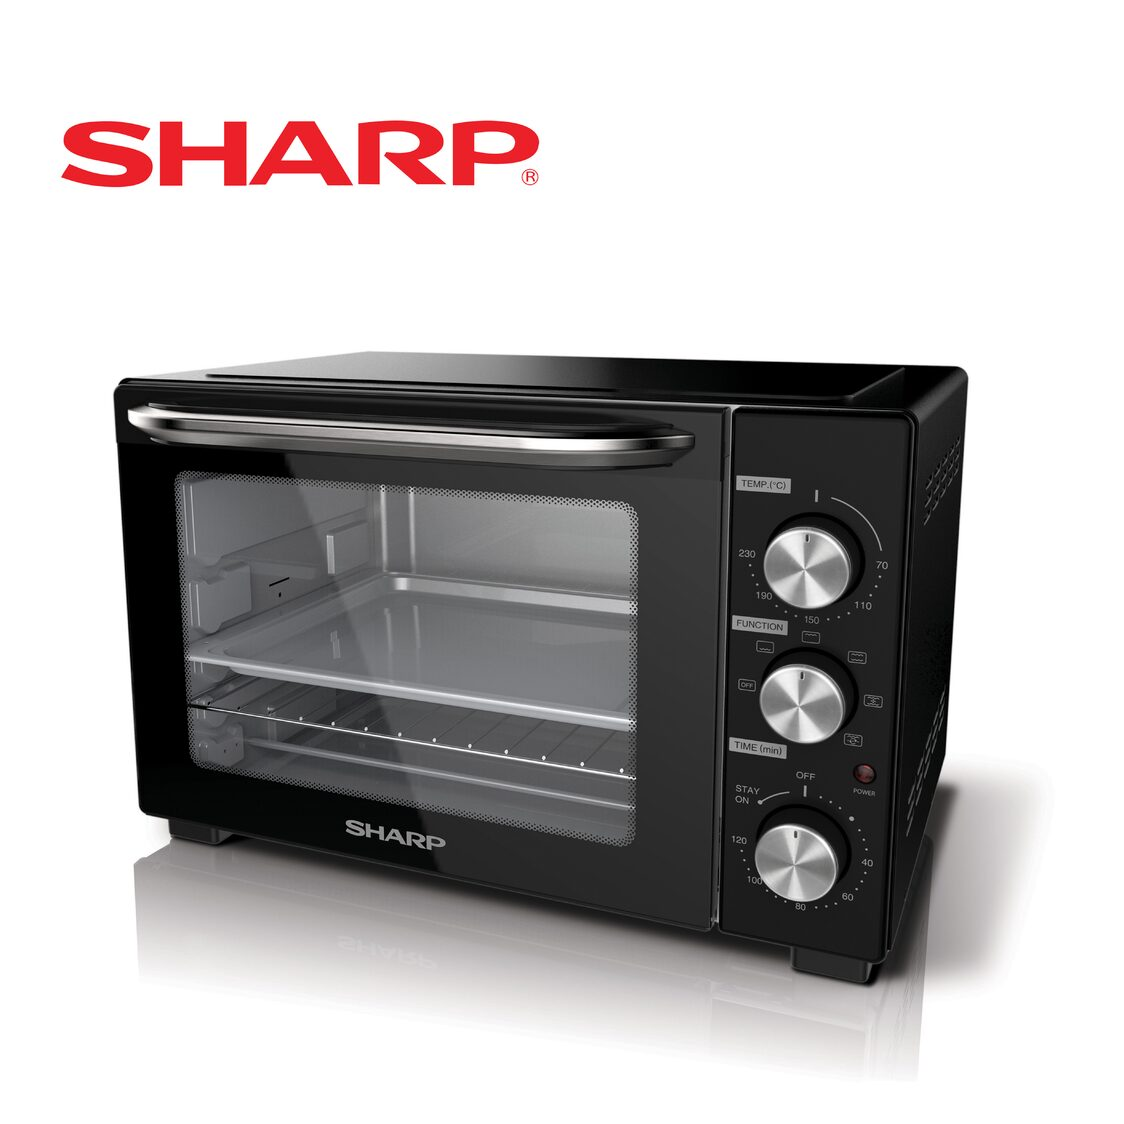 Sharp 32L Electric Oven With Rotisserie Fork And Convection EO-327R-BK